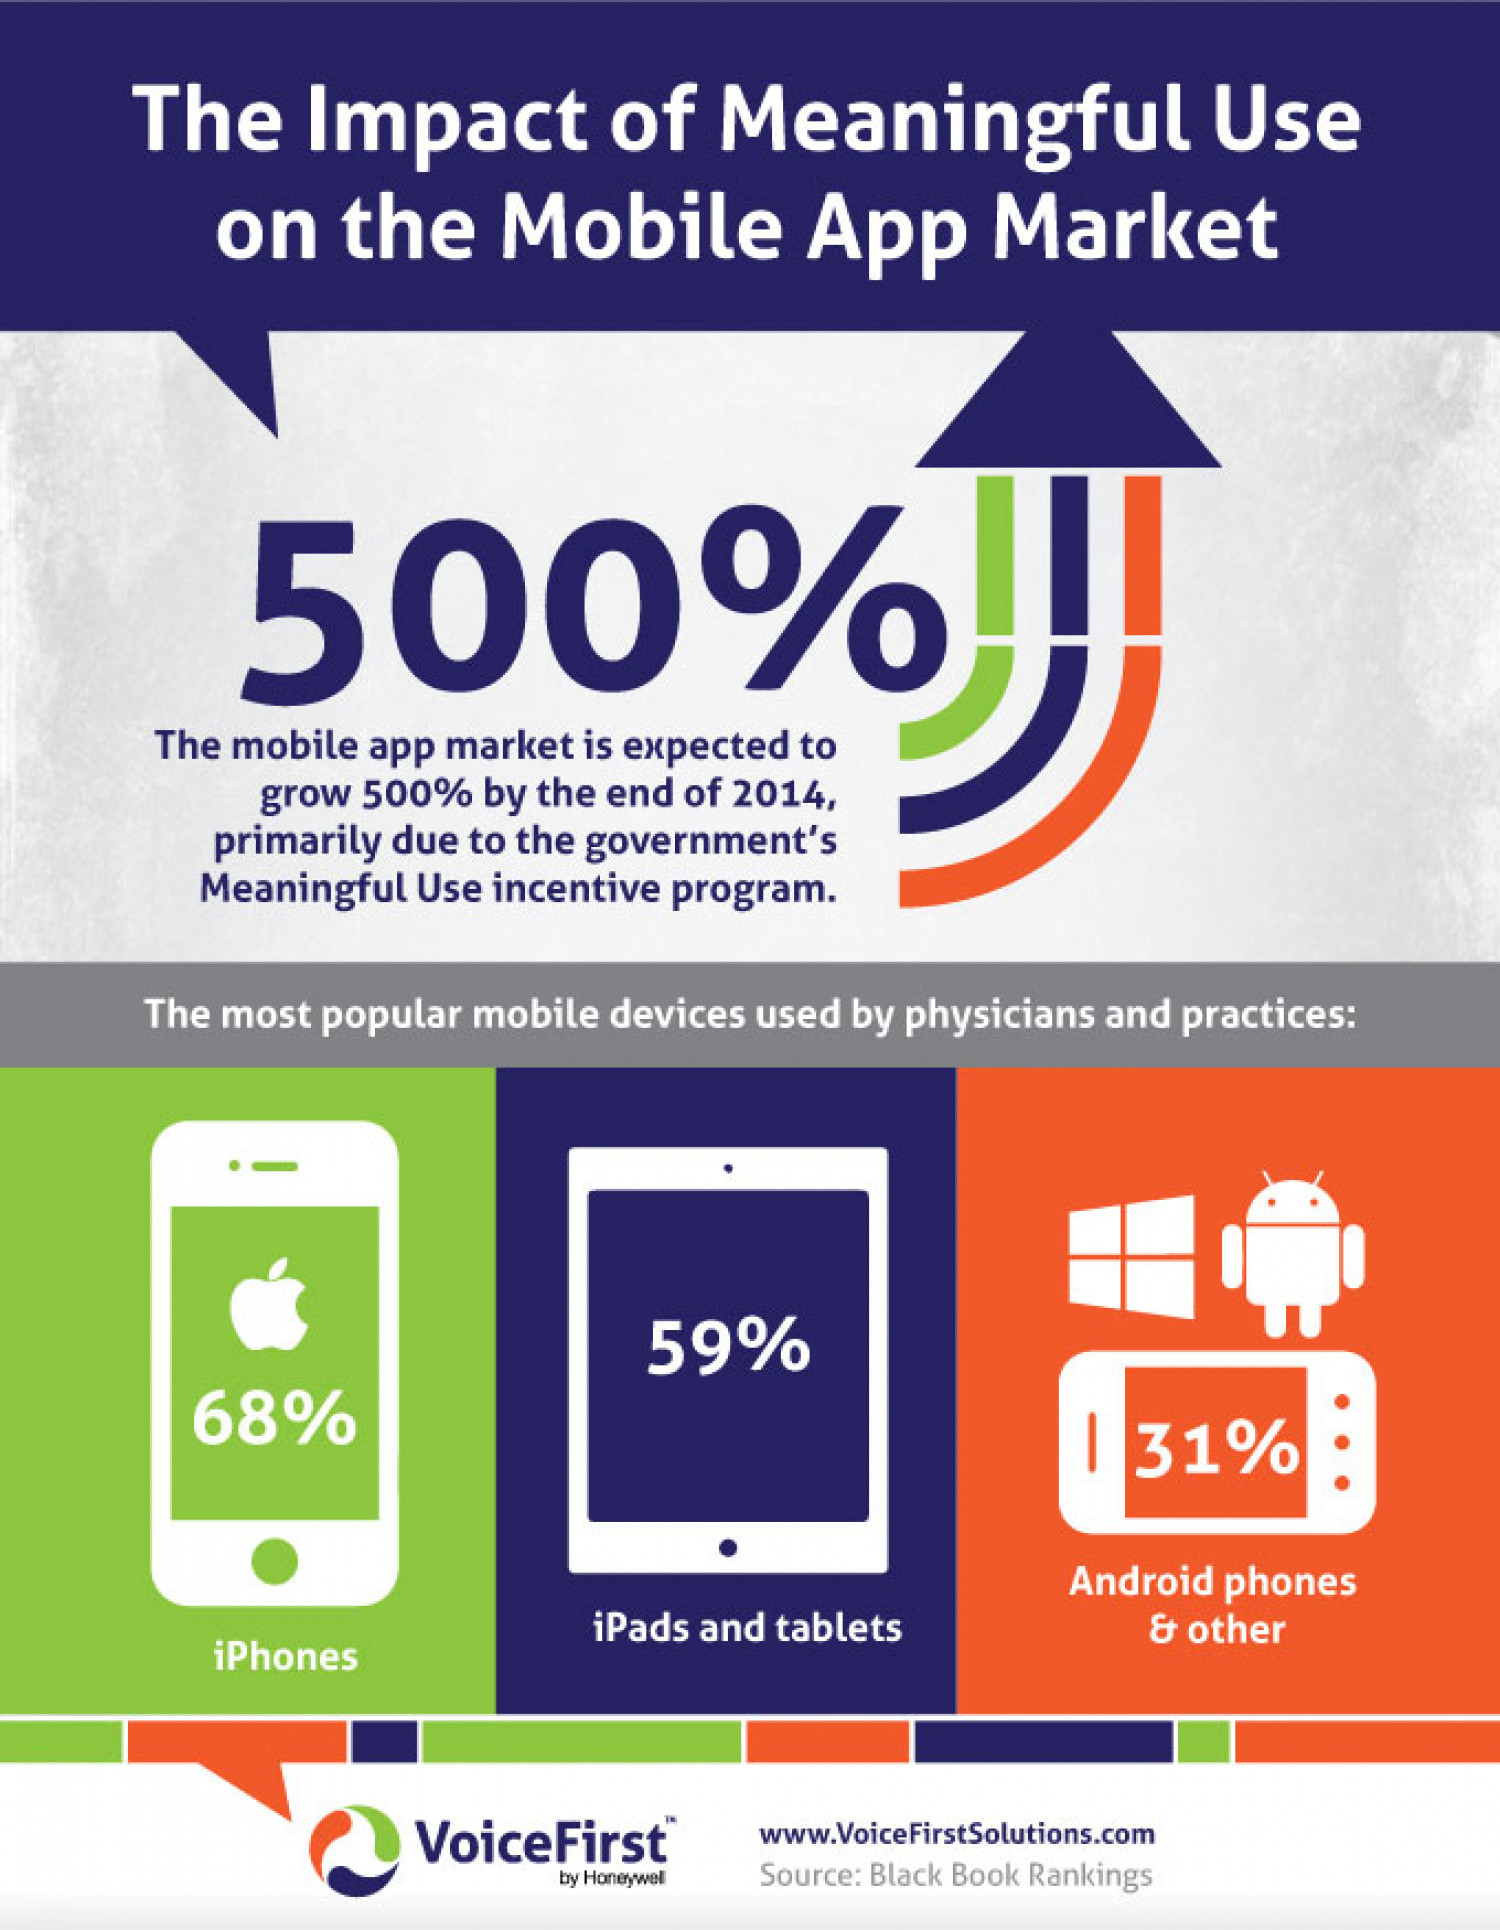 The Impact of Meaningful Use on the Mobile App Market Infographic